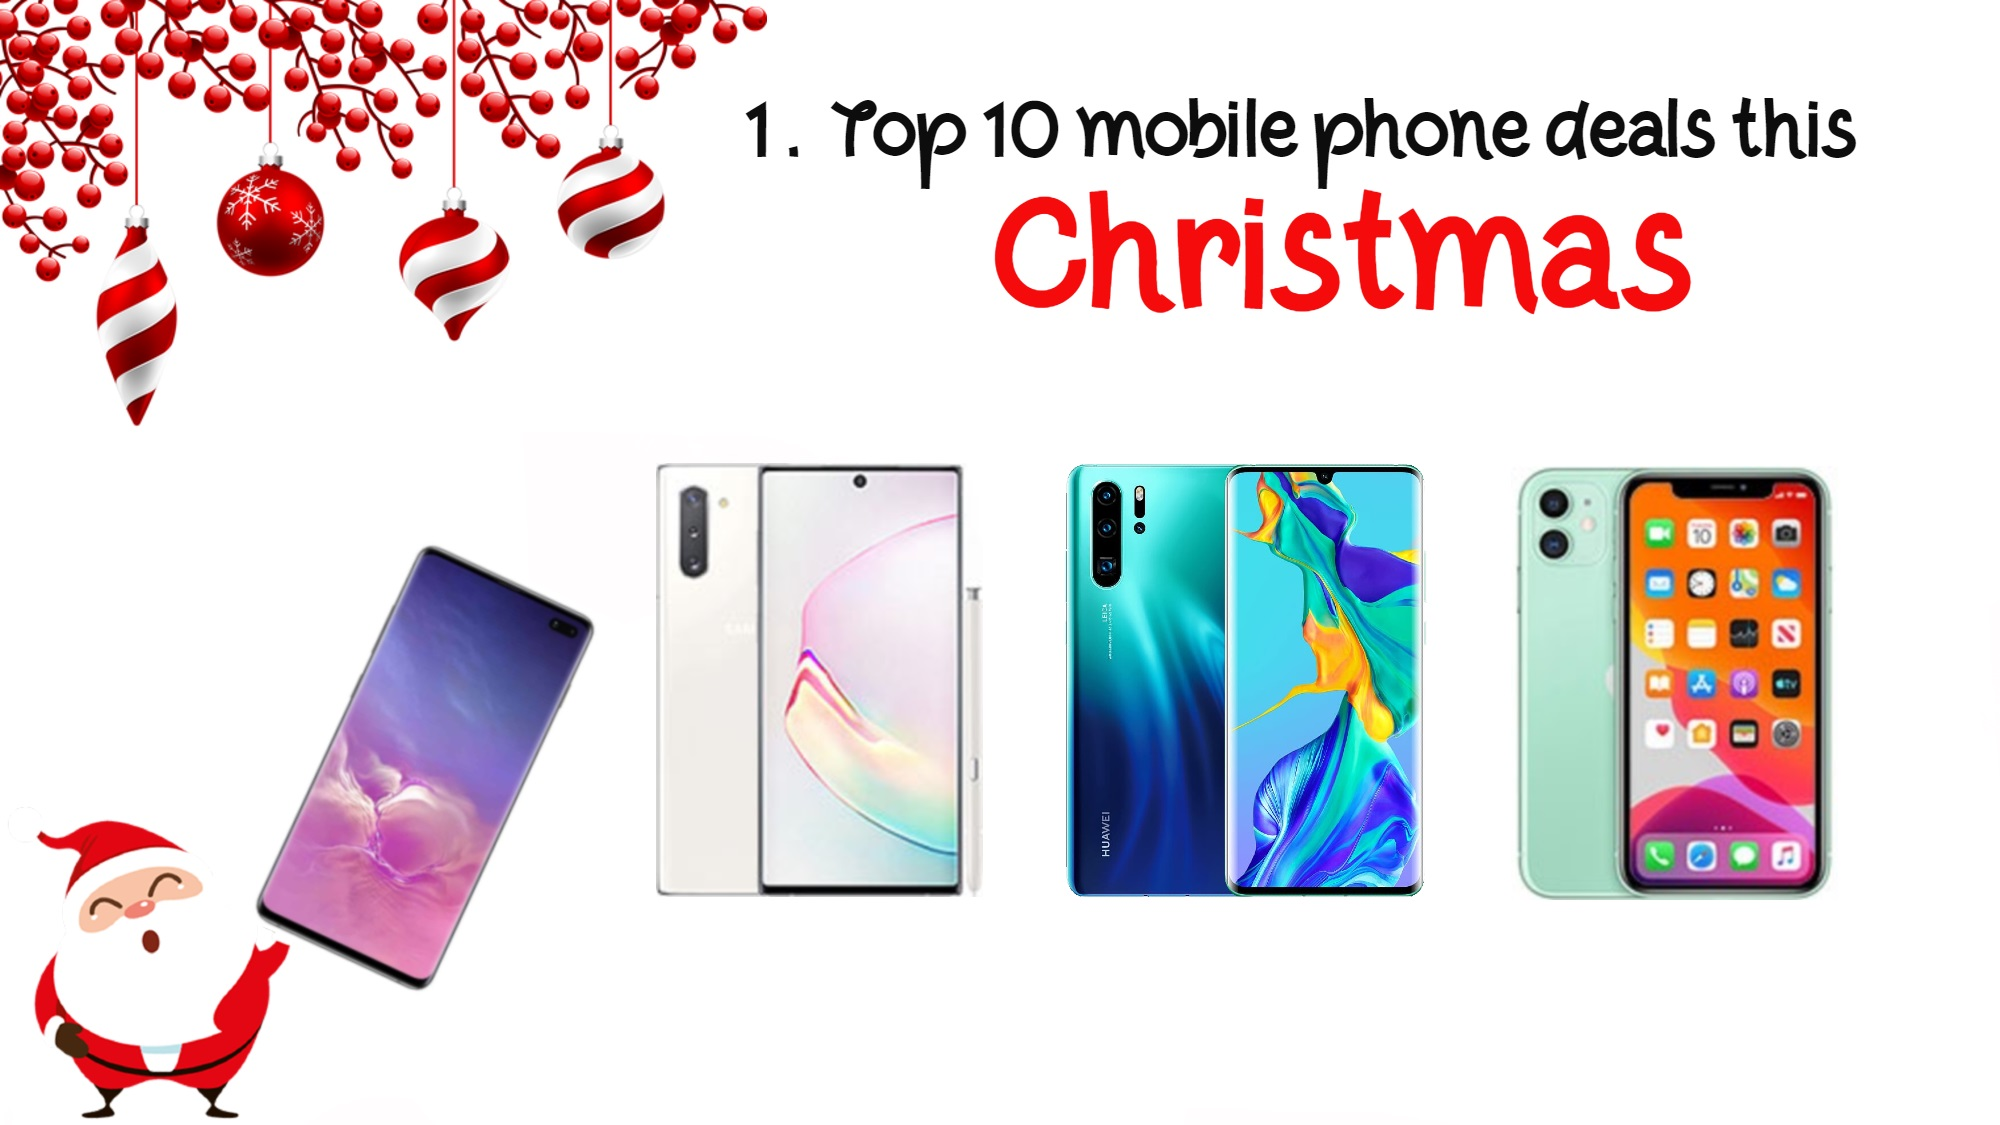 top 10 phone deals in Christmas